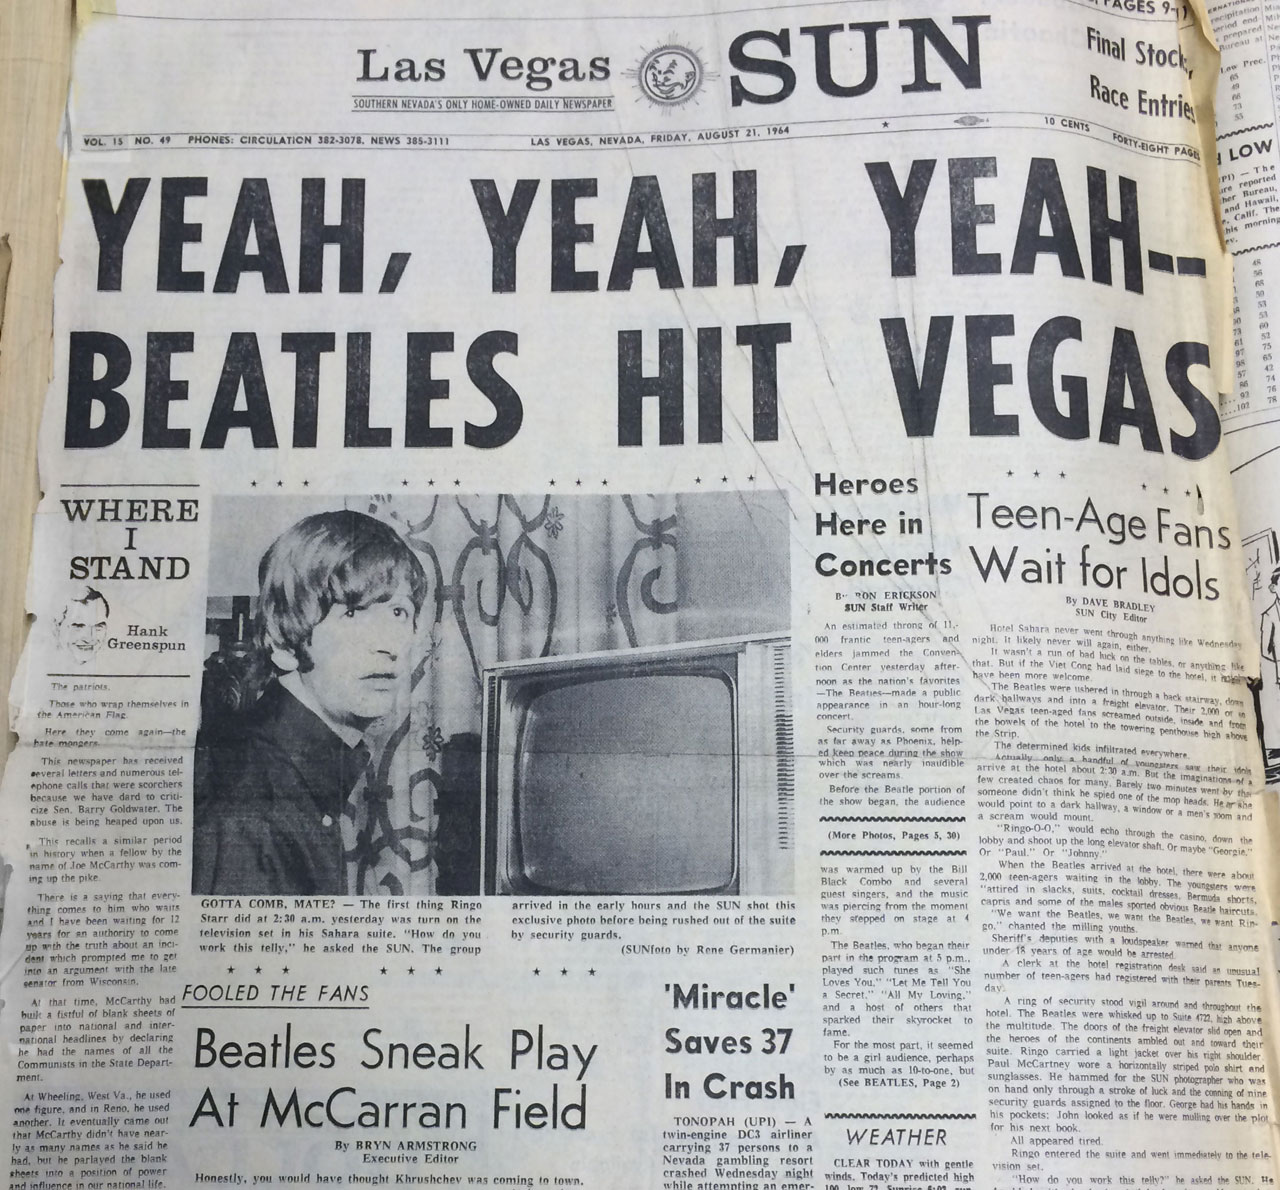 Las Vegas Sun Beatles